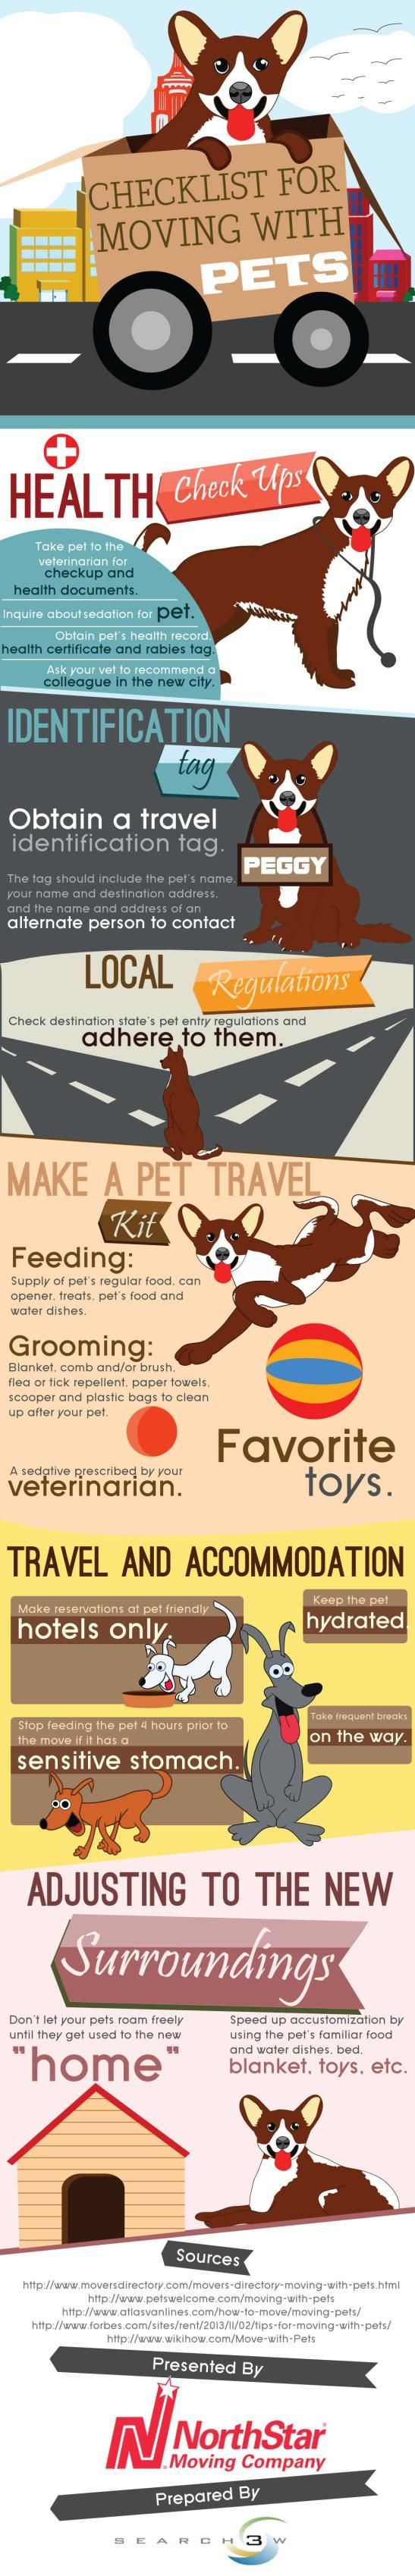 Checklist For Moving With Pets-assistance pet owners with information about things to do when moving with pets.